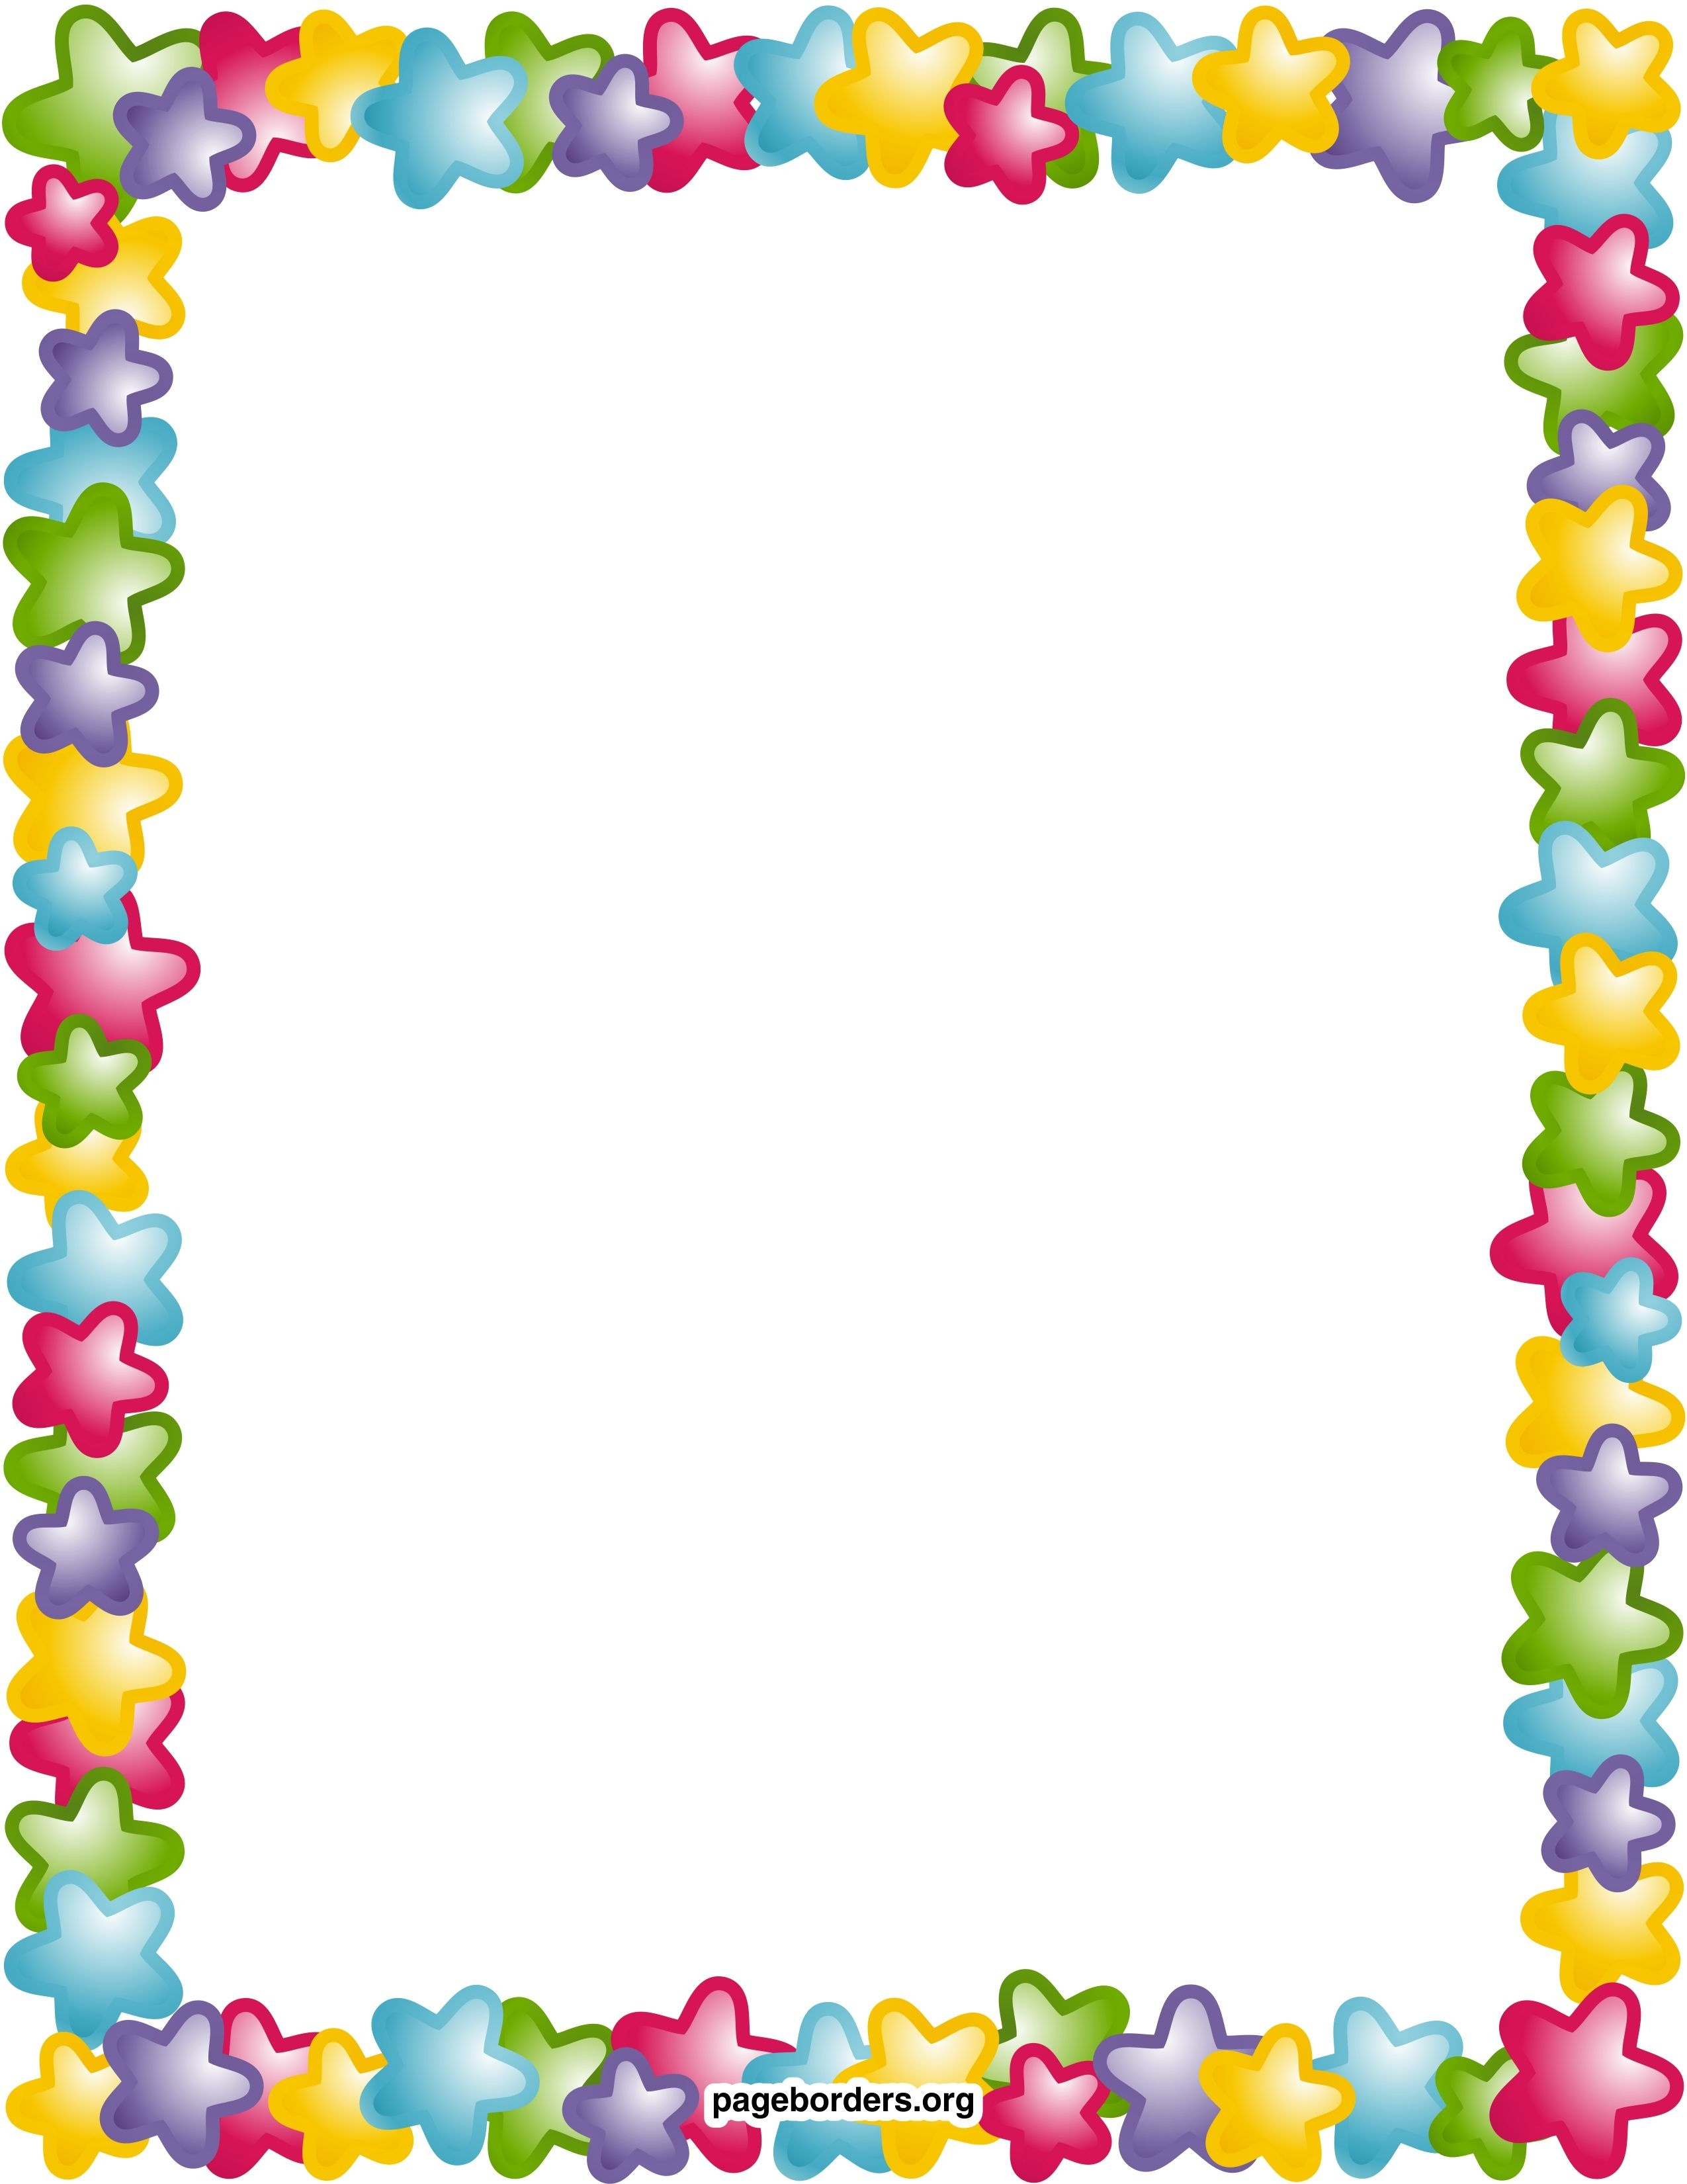 Remarkable Decoration Free Printable Borders And Frames Clip Art - Free Printable Border Paper